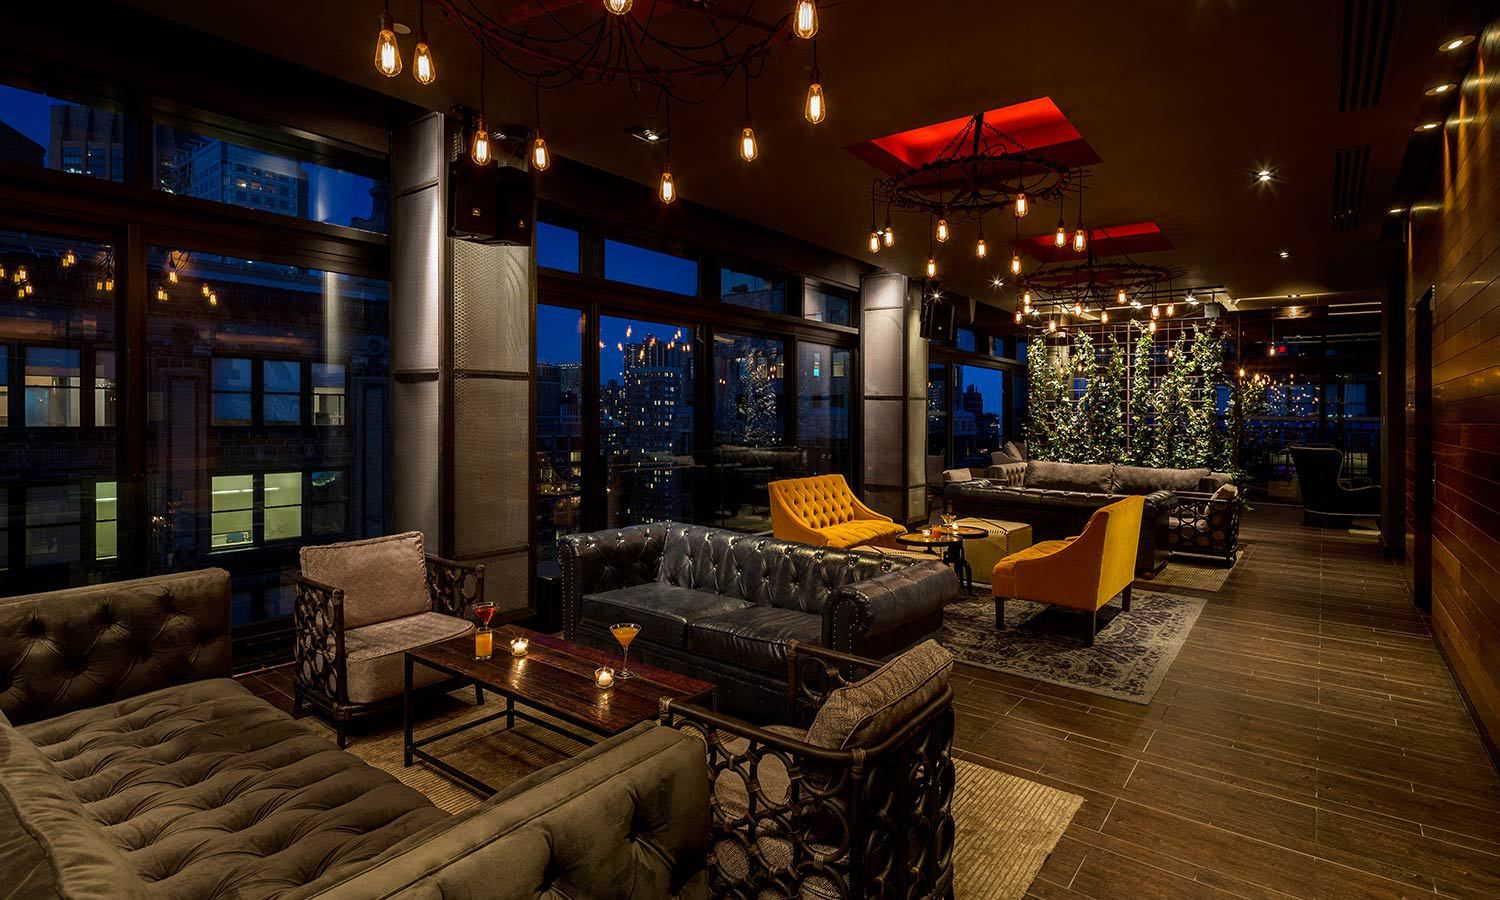 Manhattan luxury hotel bars lounges and restaurants new for Top luxury hotels nyc